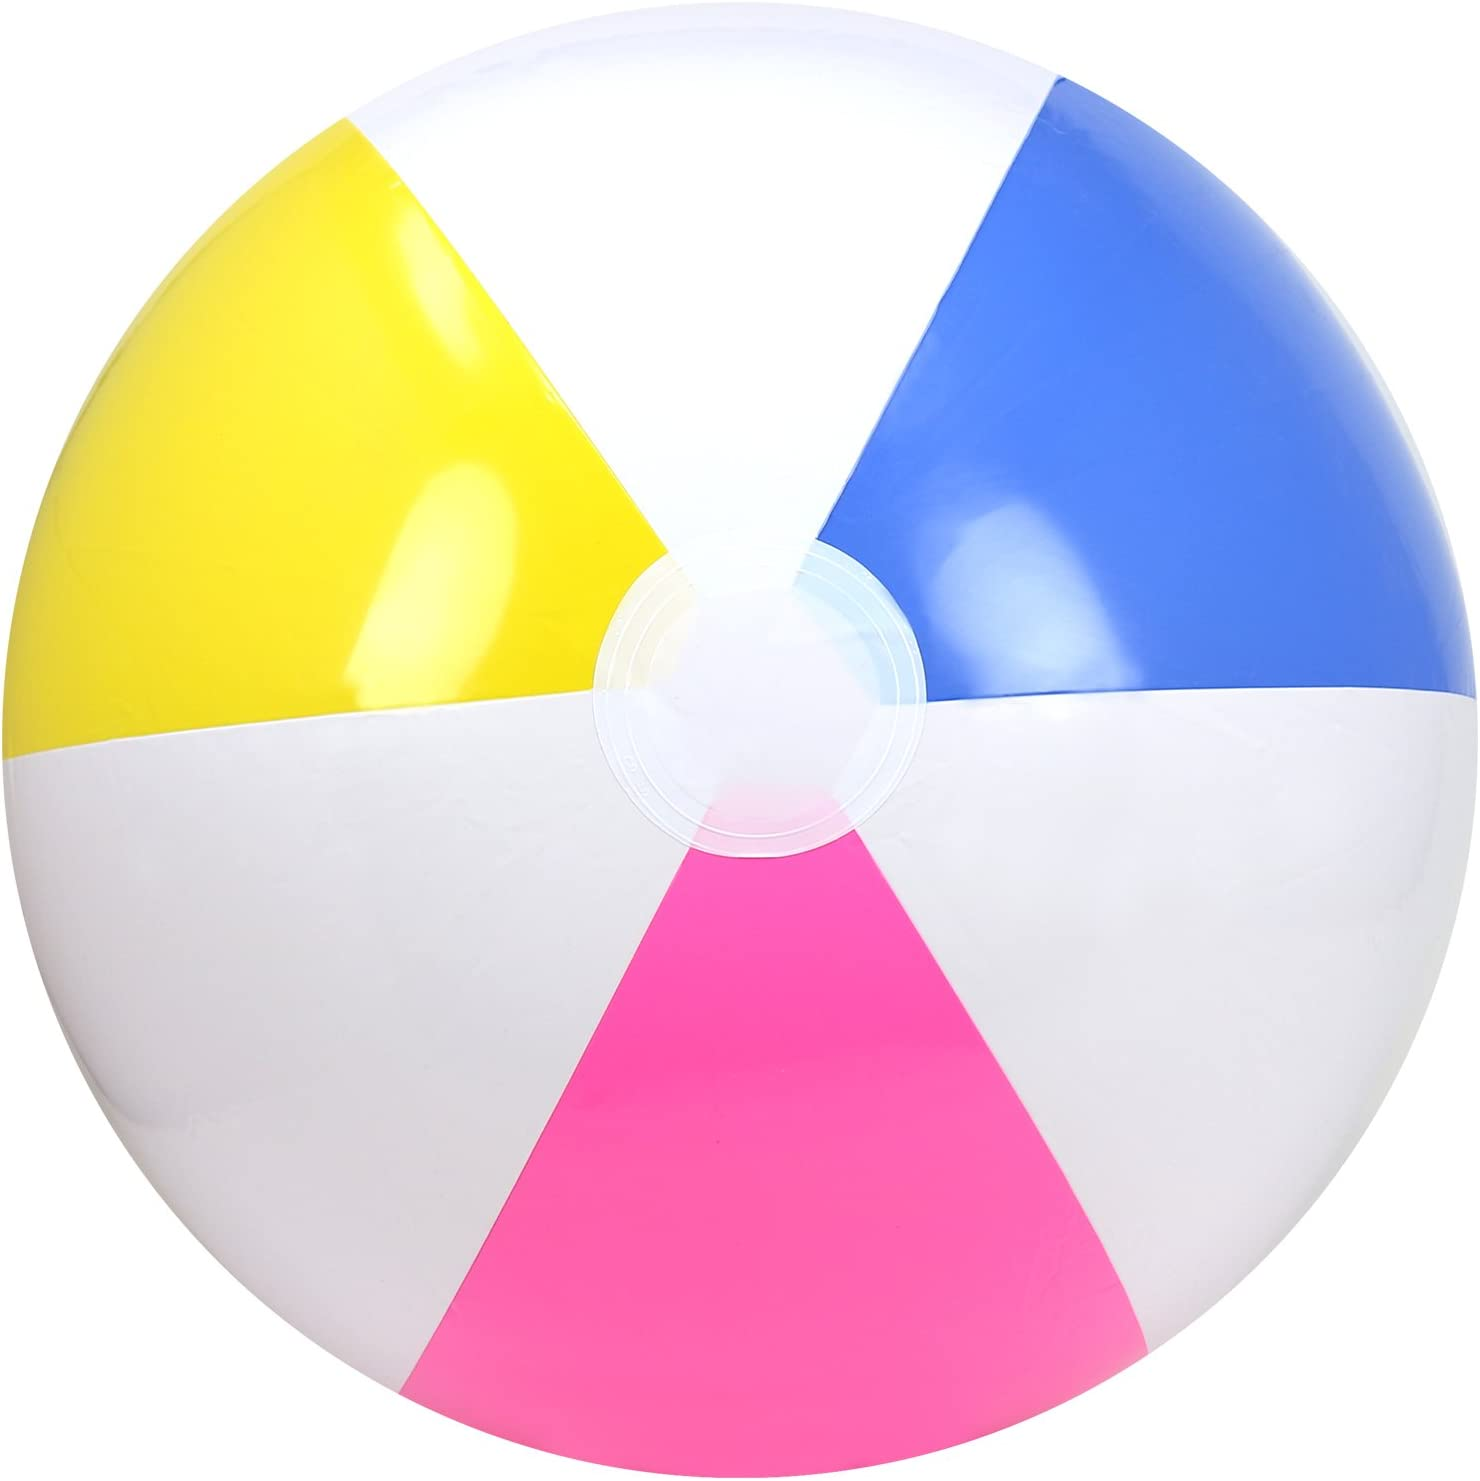 water fun beach ball /Ø 22 cm /Ø 22 cm - 01 pieces beach ball com-four/® inflatable fabric beach ball as beach volleyball for the summer in neon yellow and blue